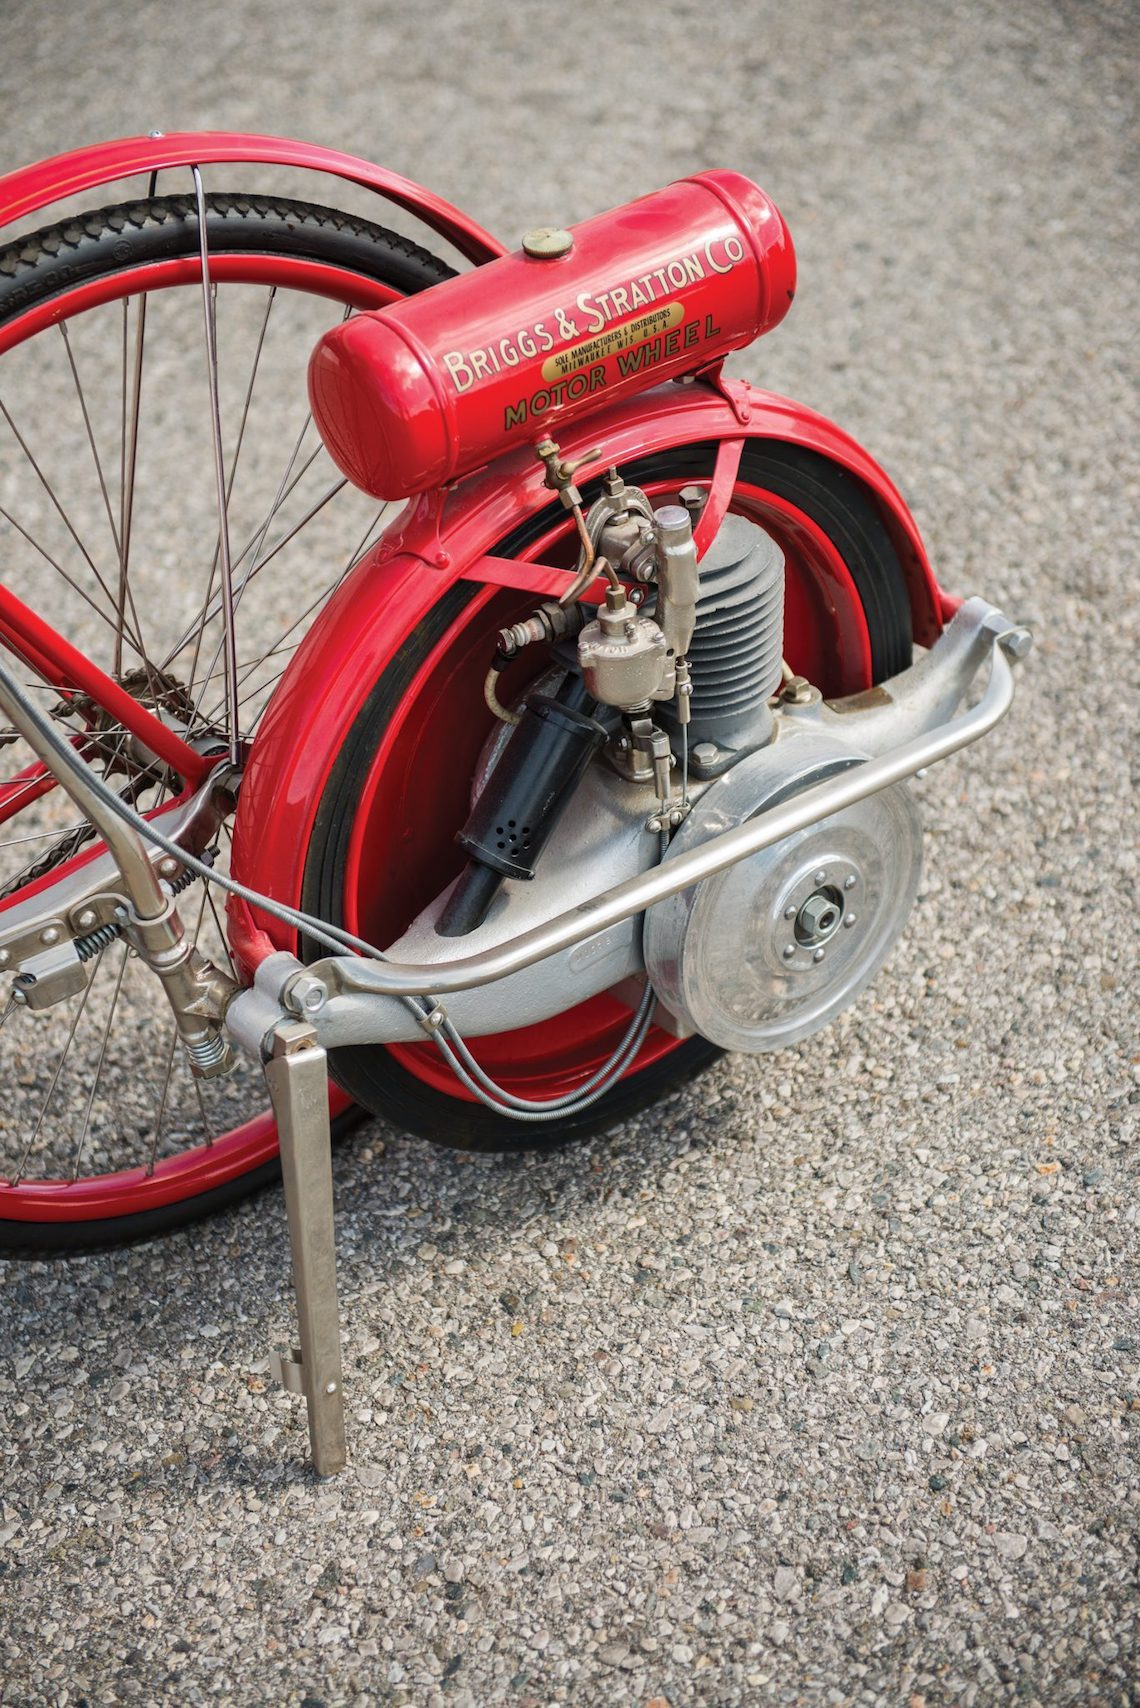 Briggs & Stratton Flyer bicycle_2